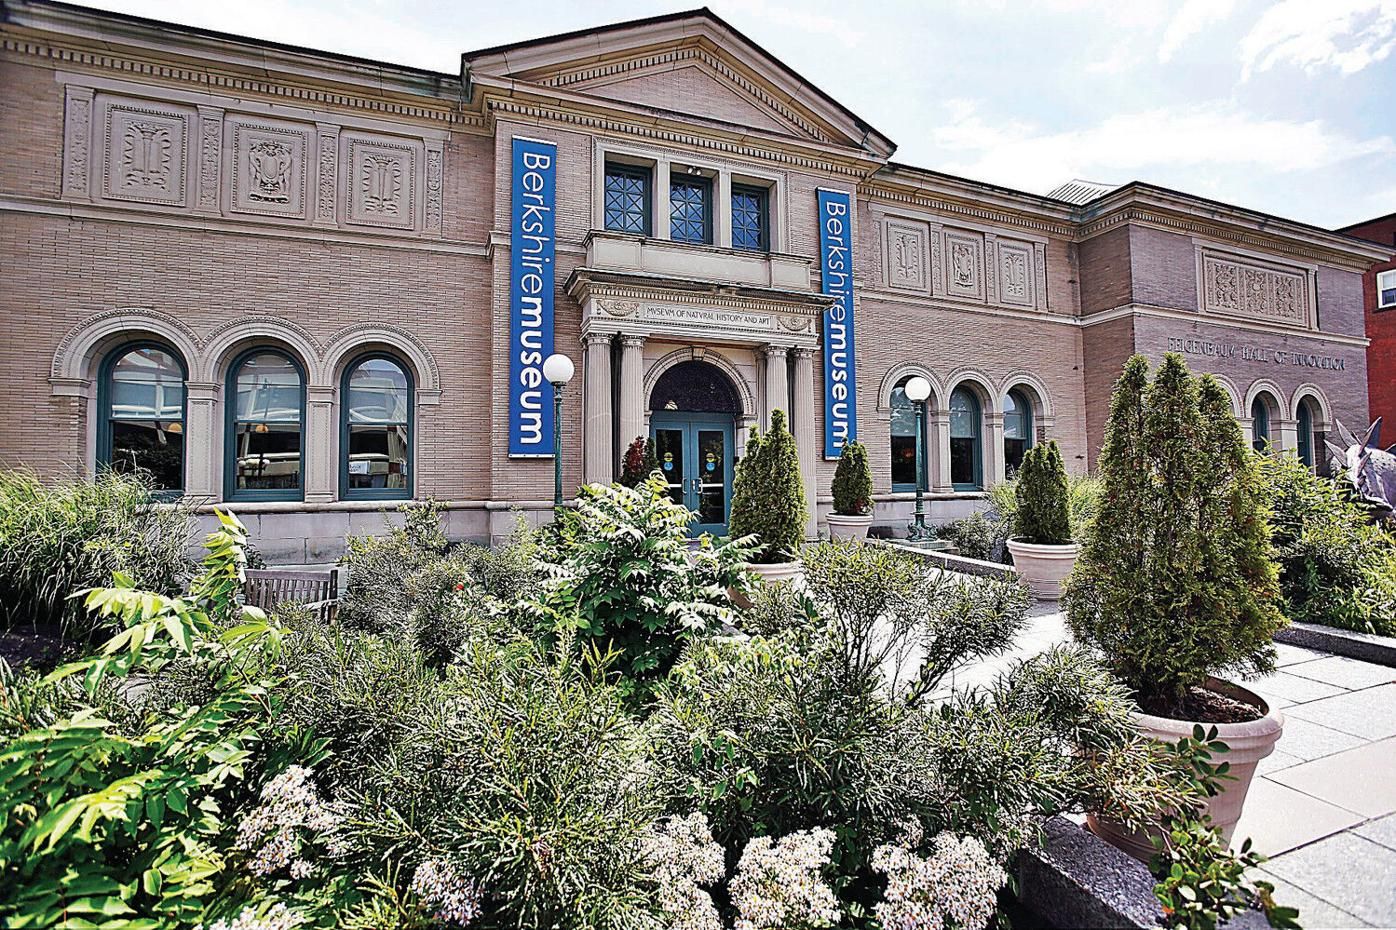 Attorney General joins call for Berkshire Museum to halt art sale